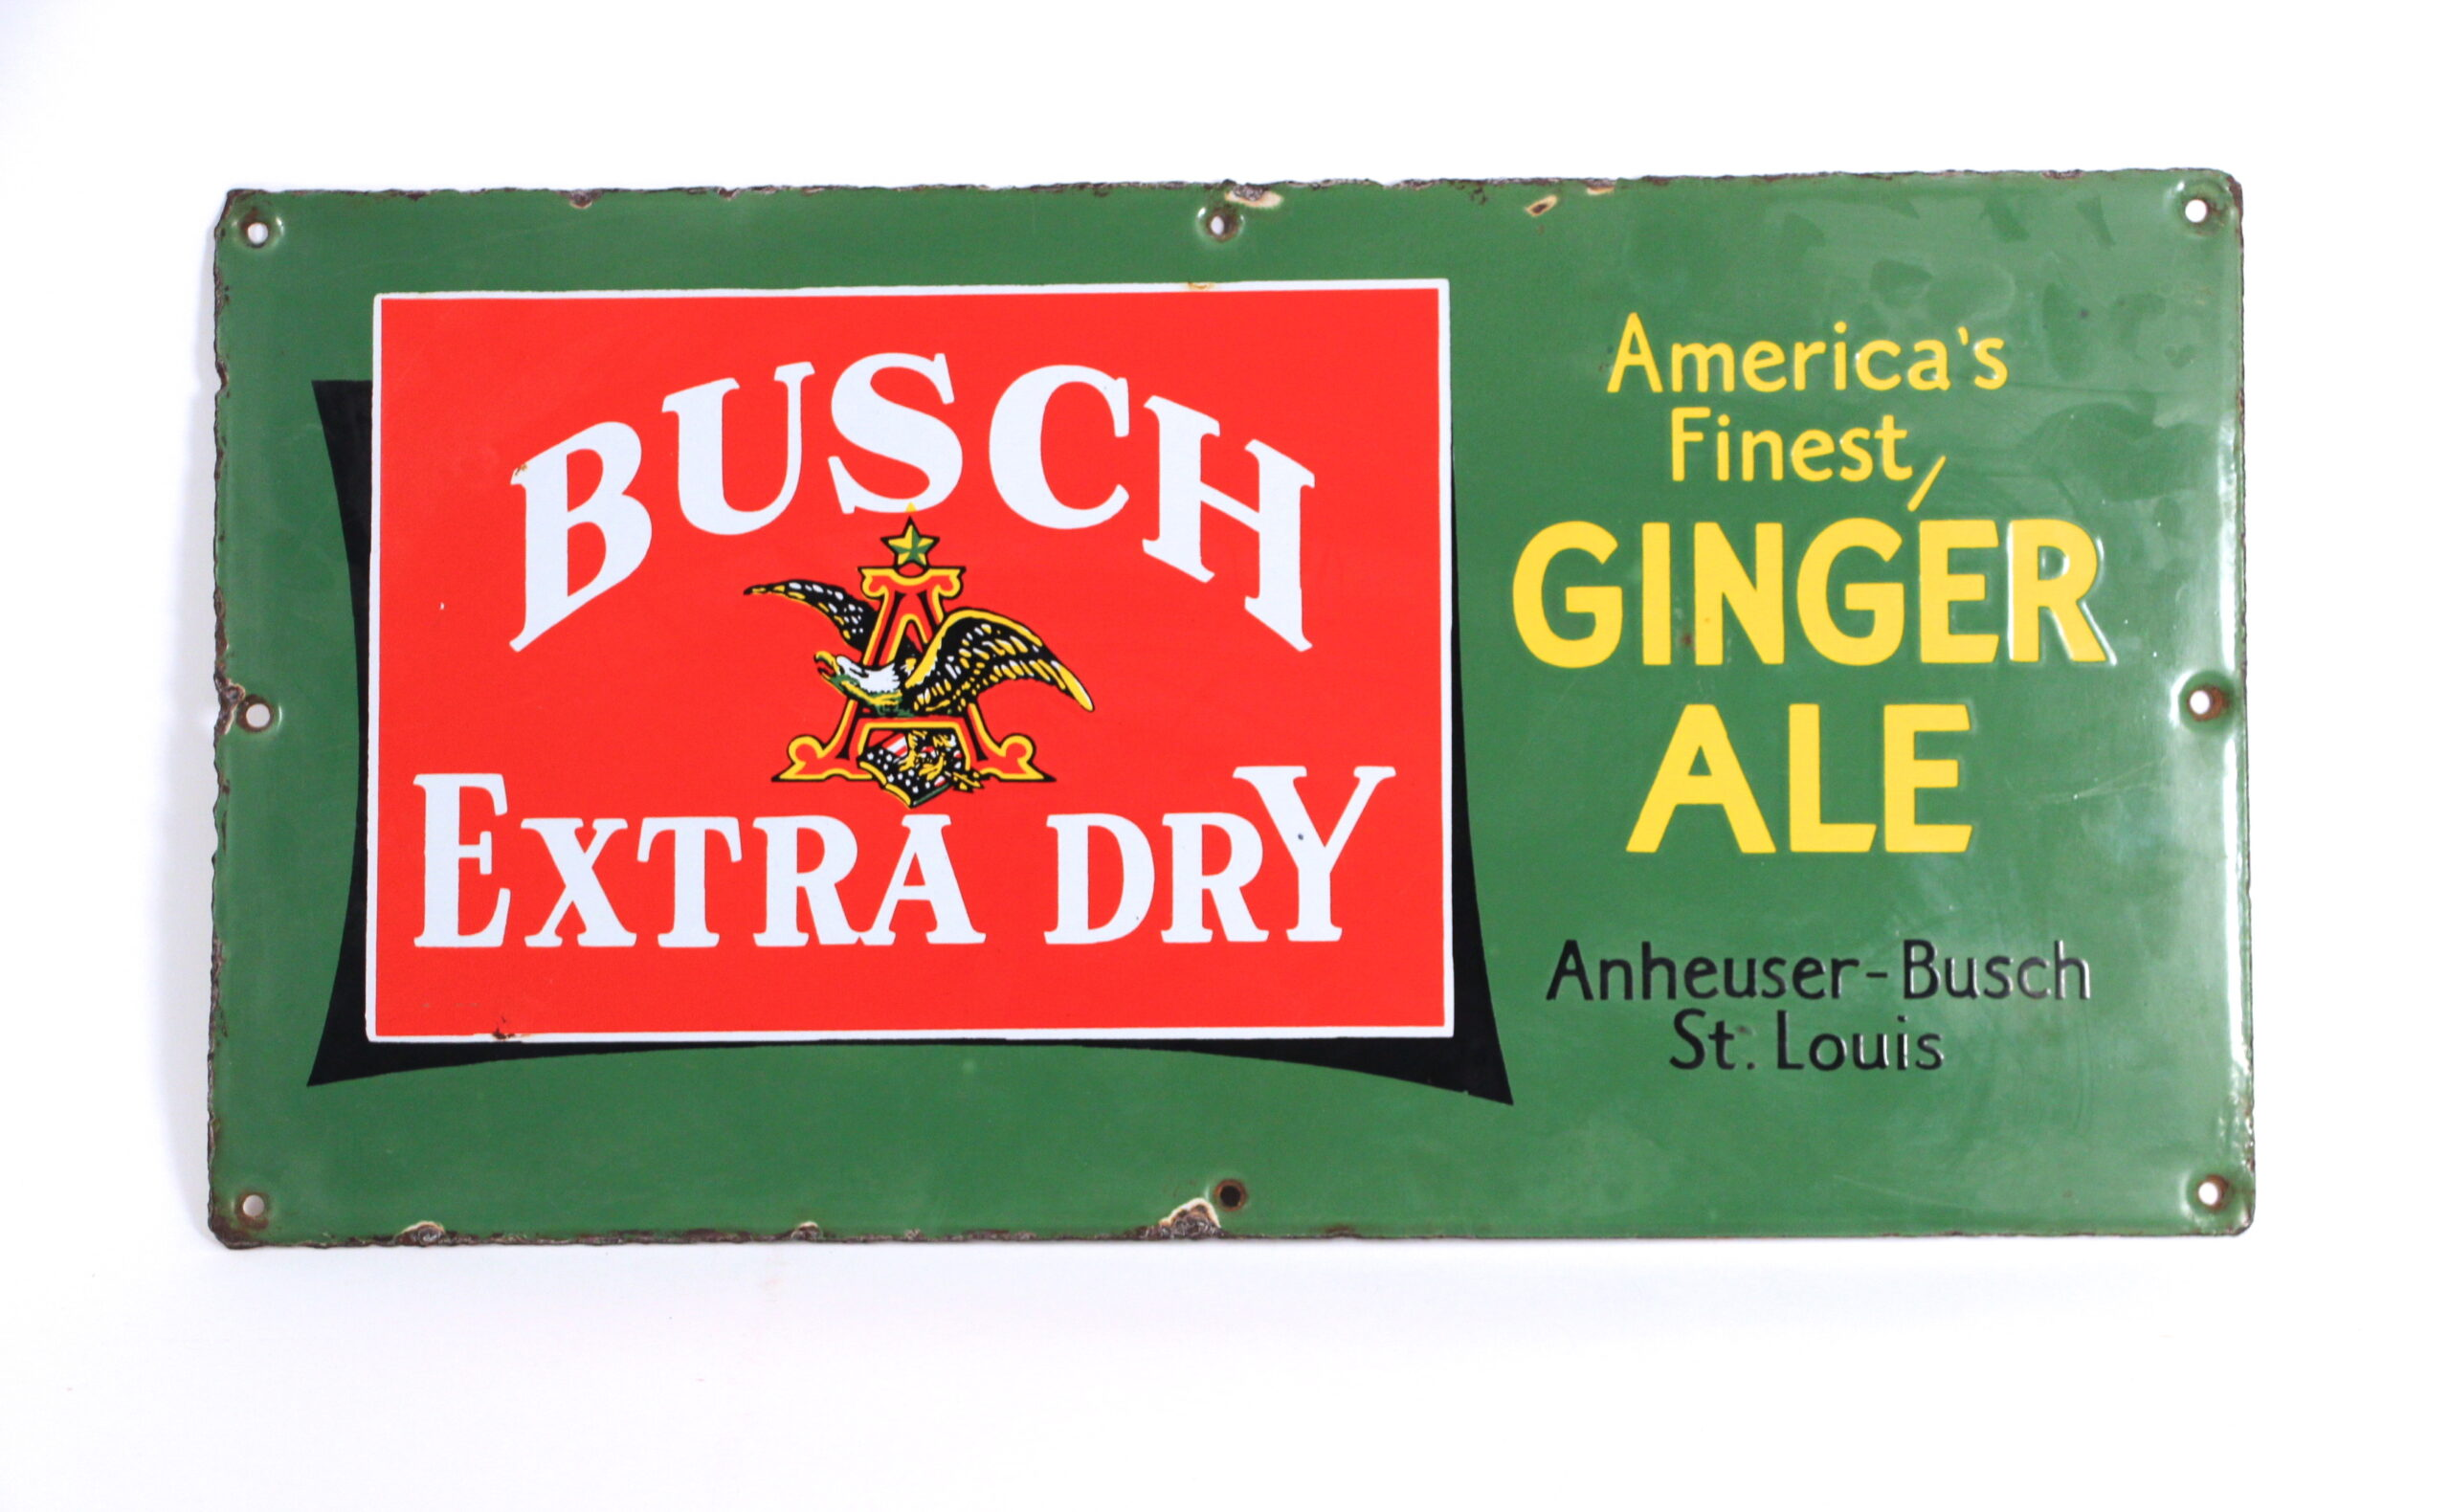 Anheuser-Busch Busch Extra Dry Porcelain Ginger Ale Sign